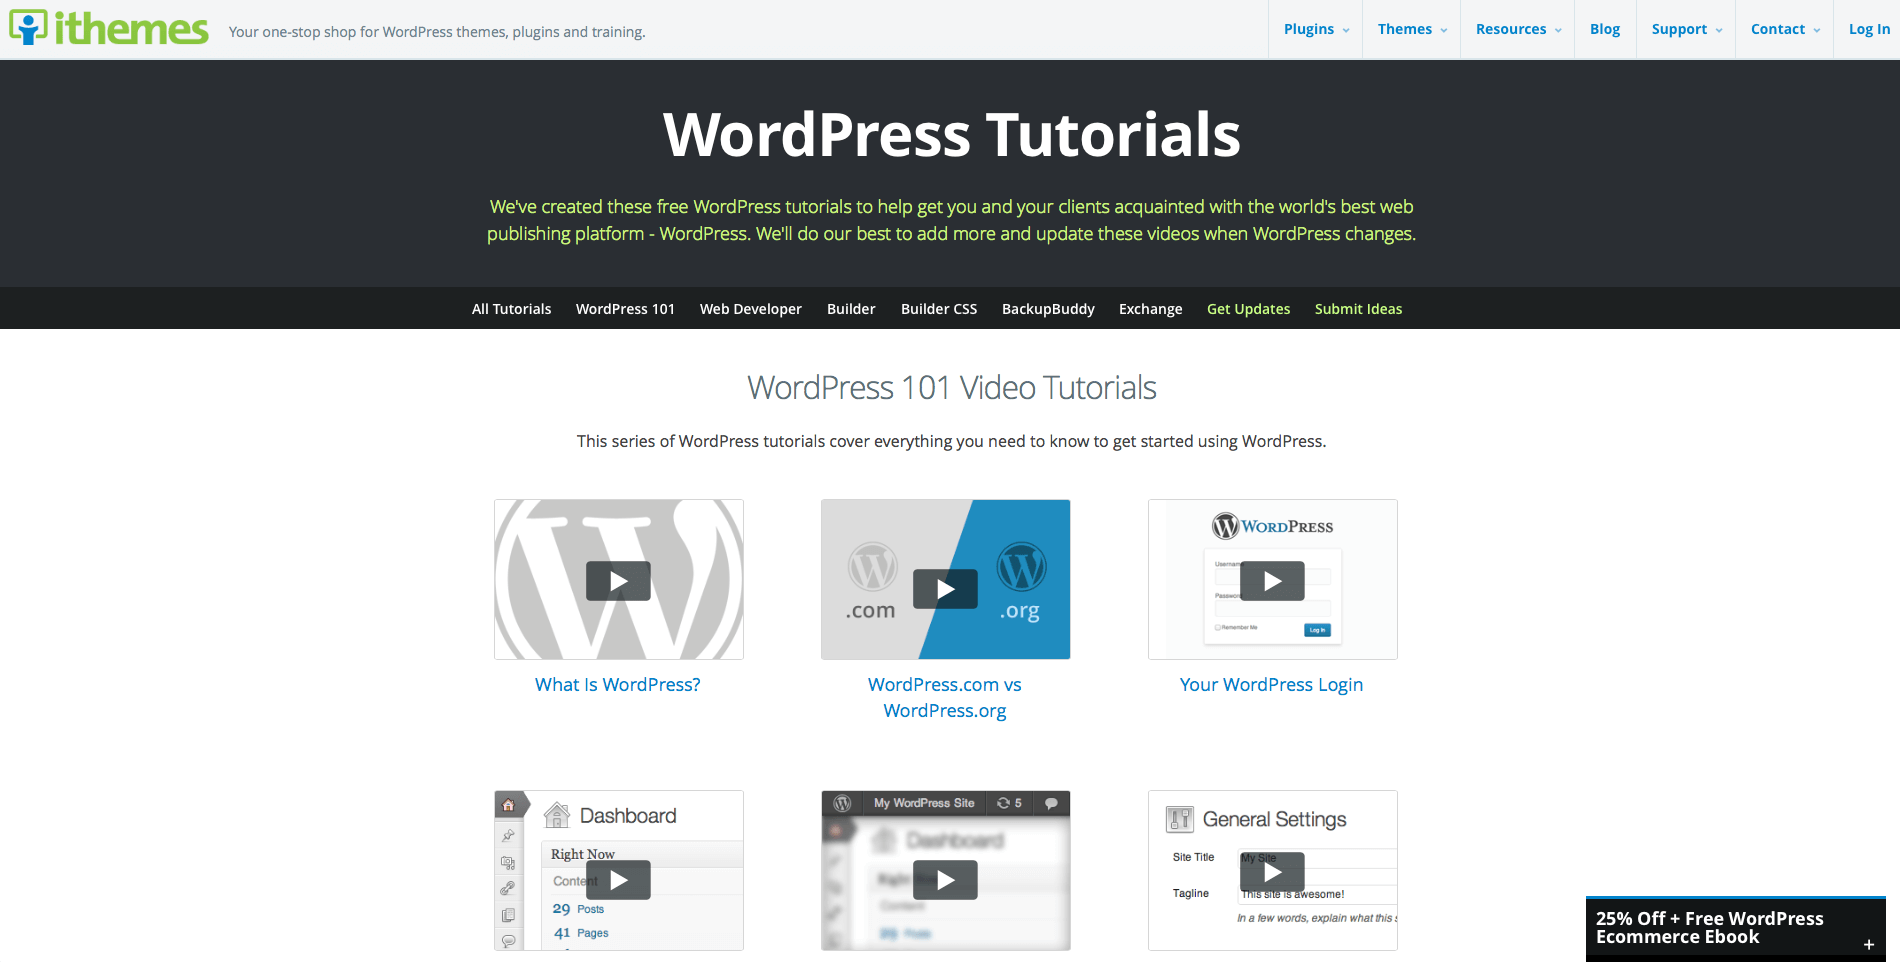 WordPress 101 Tutorials Screenshot